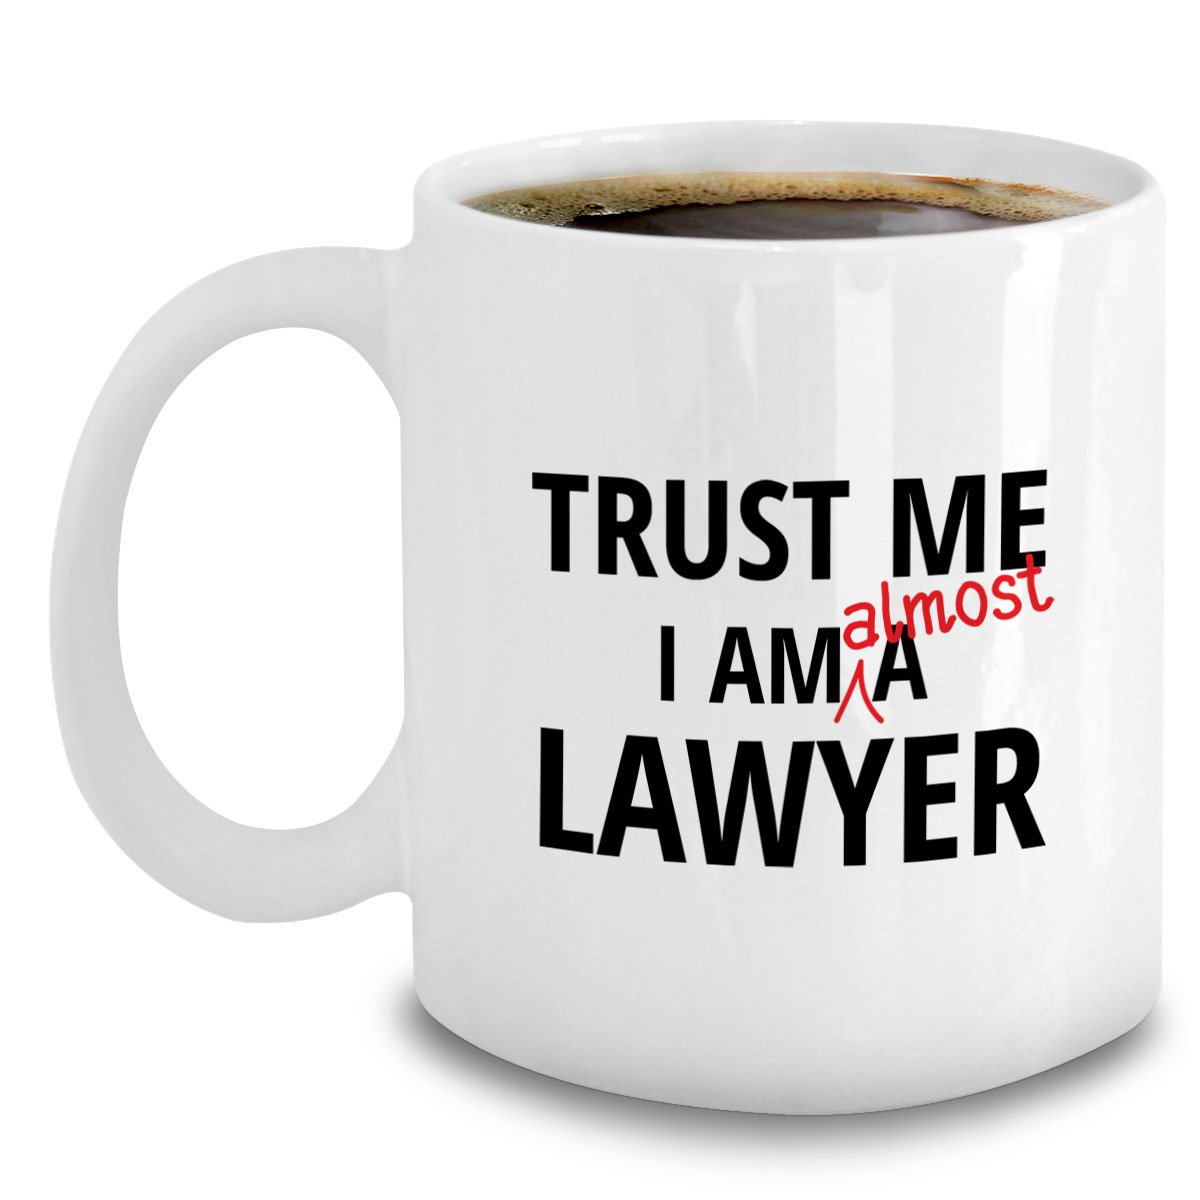 400e5c34e1b Amazon.com  Law Student Coffee Mug - Almost A Lawyer - Funny Law School  Gift  Kitchen   Dining